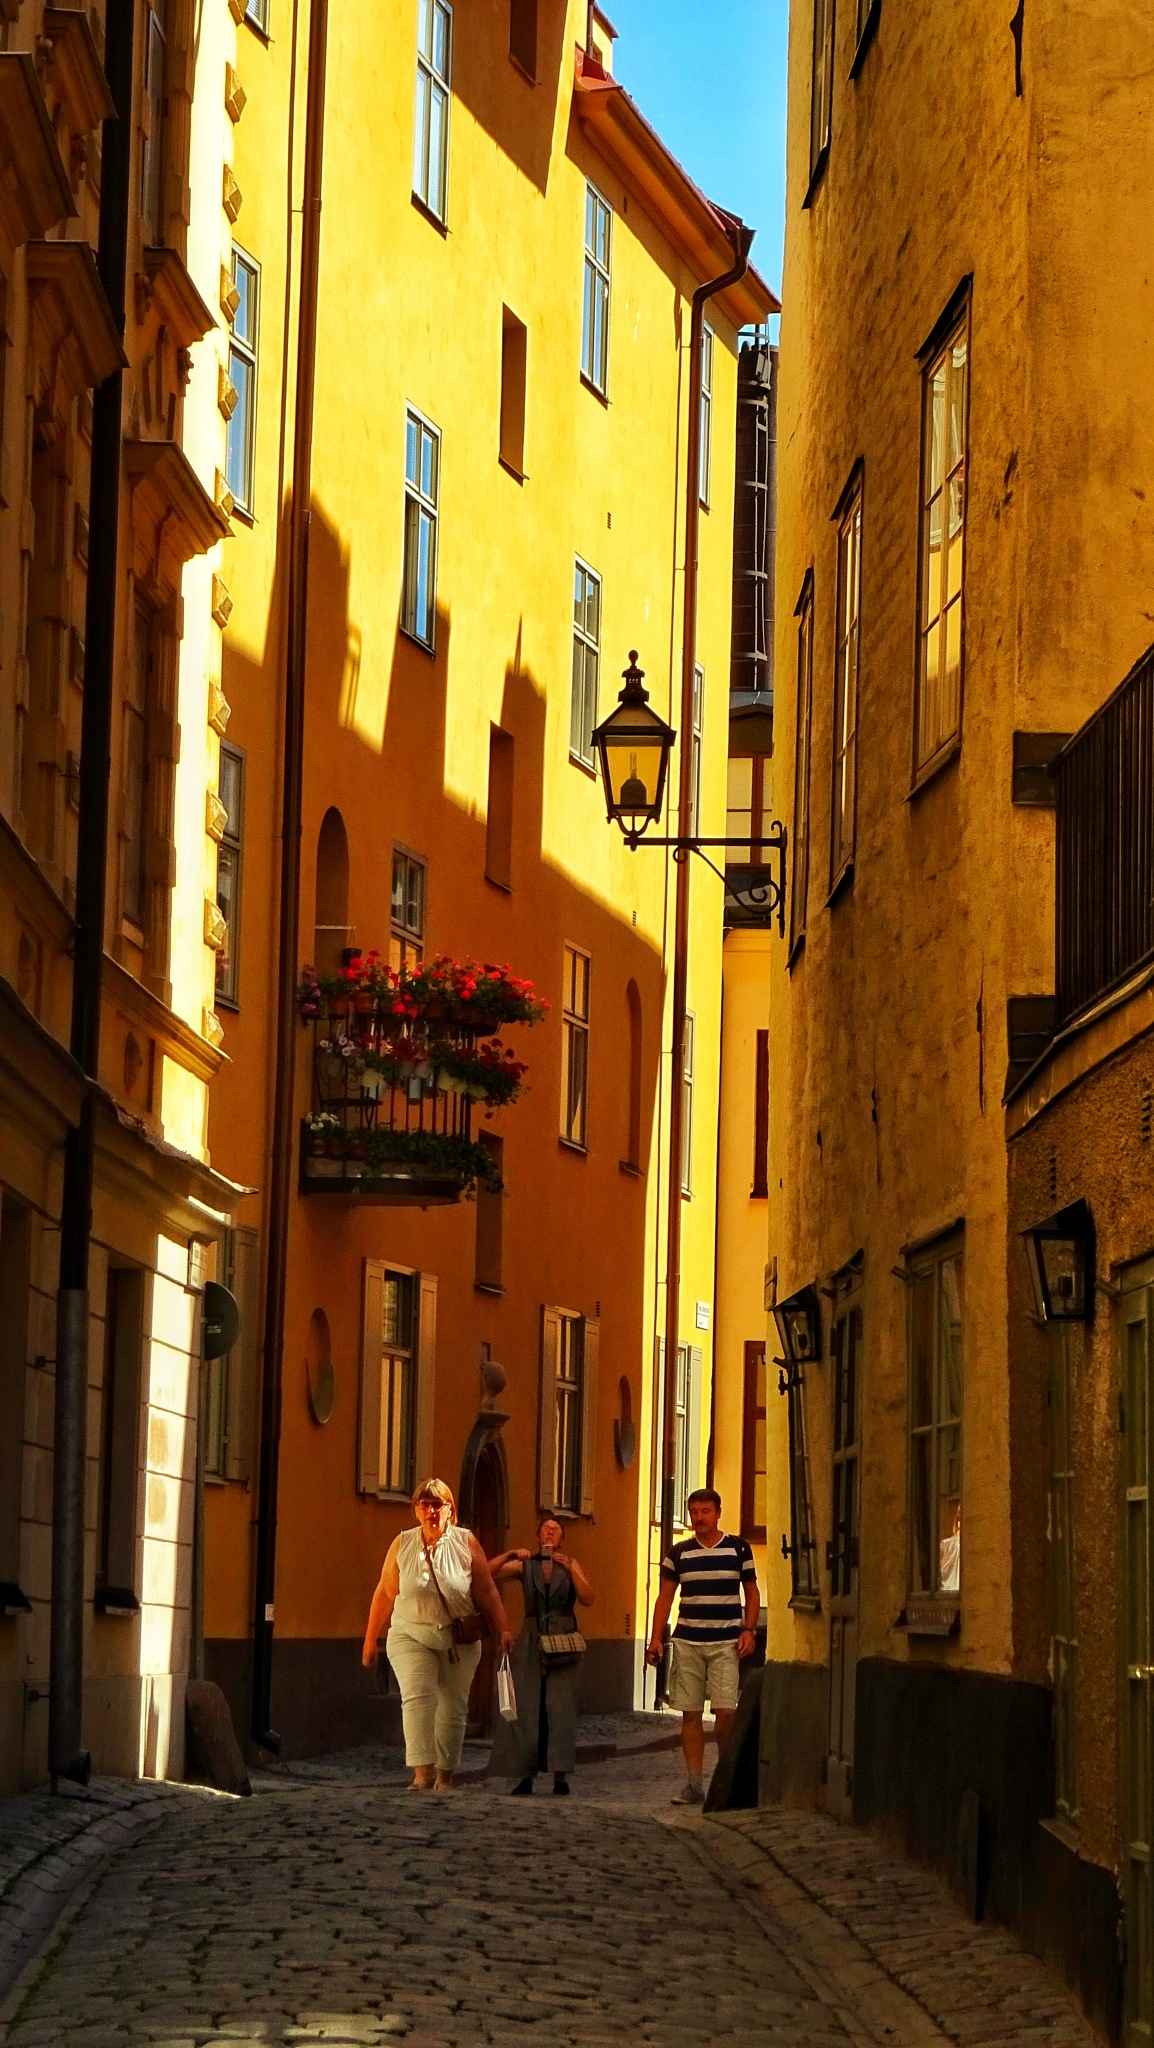 Old town Stockholm  by Pelle Westberg